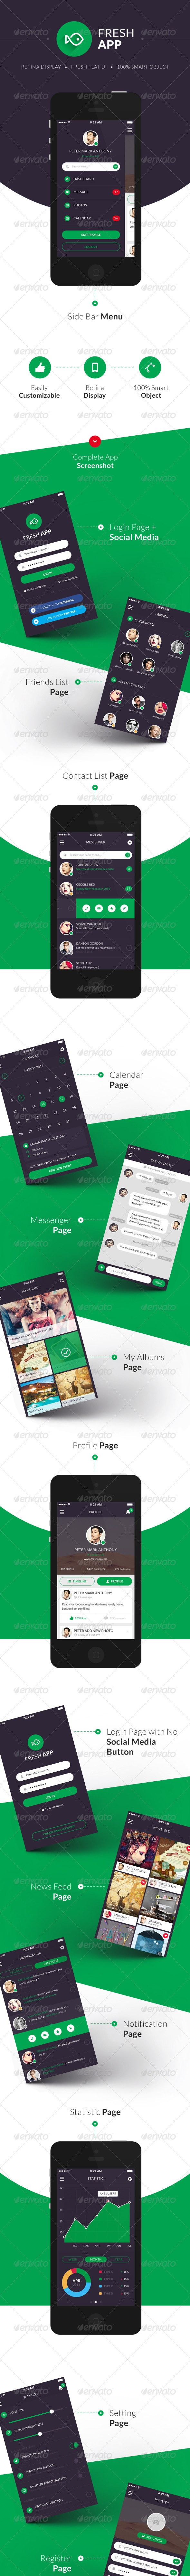 Fresh Flat Mobile UI Kit - User Interfaces Web Elements